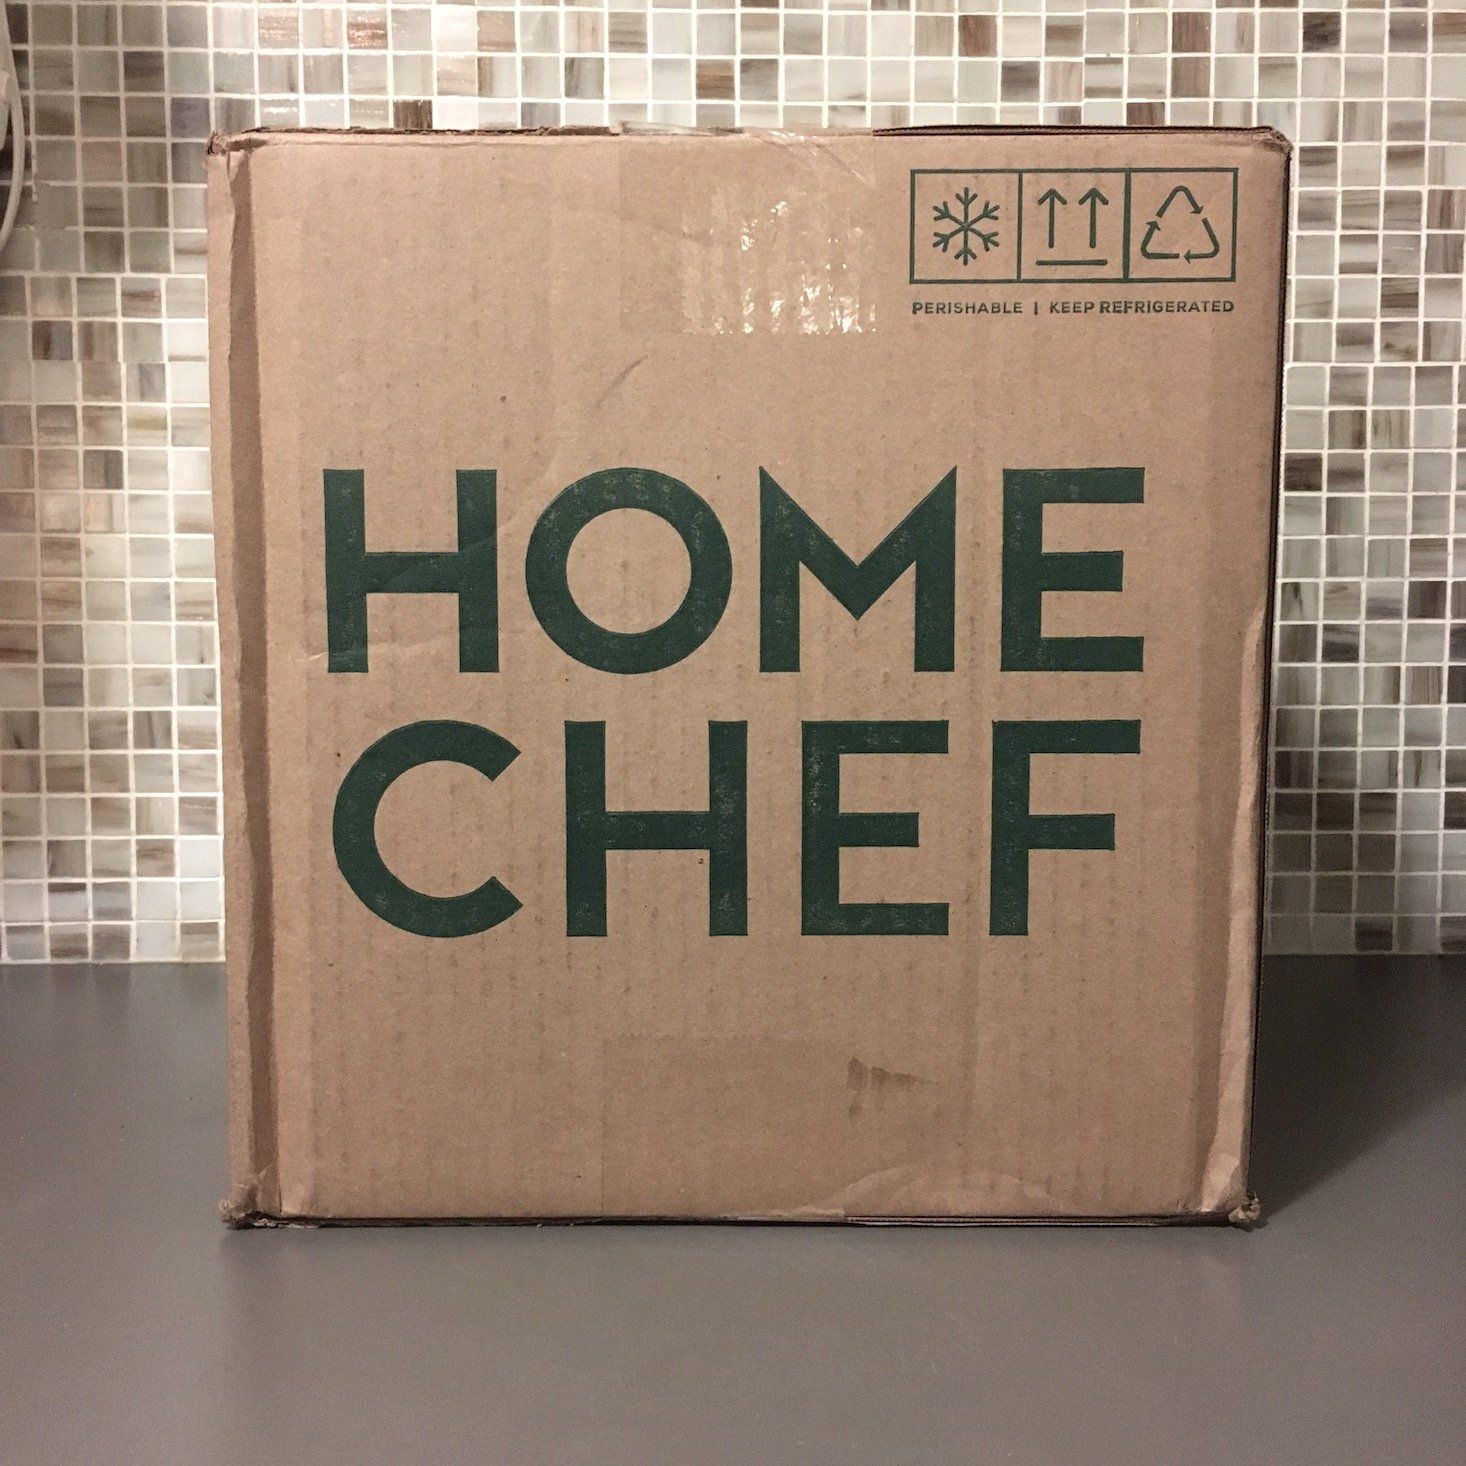 Home Chef Meal Kit Review + Coupon – February 2020